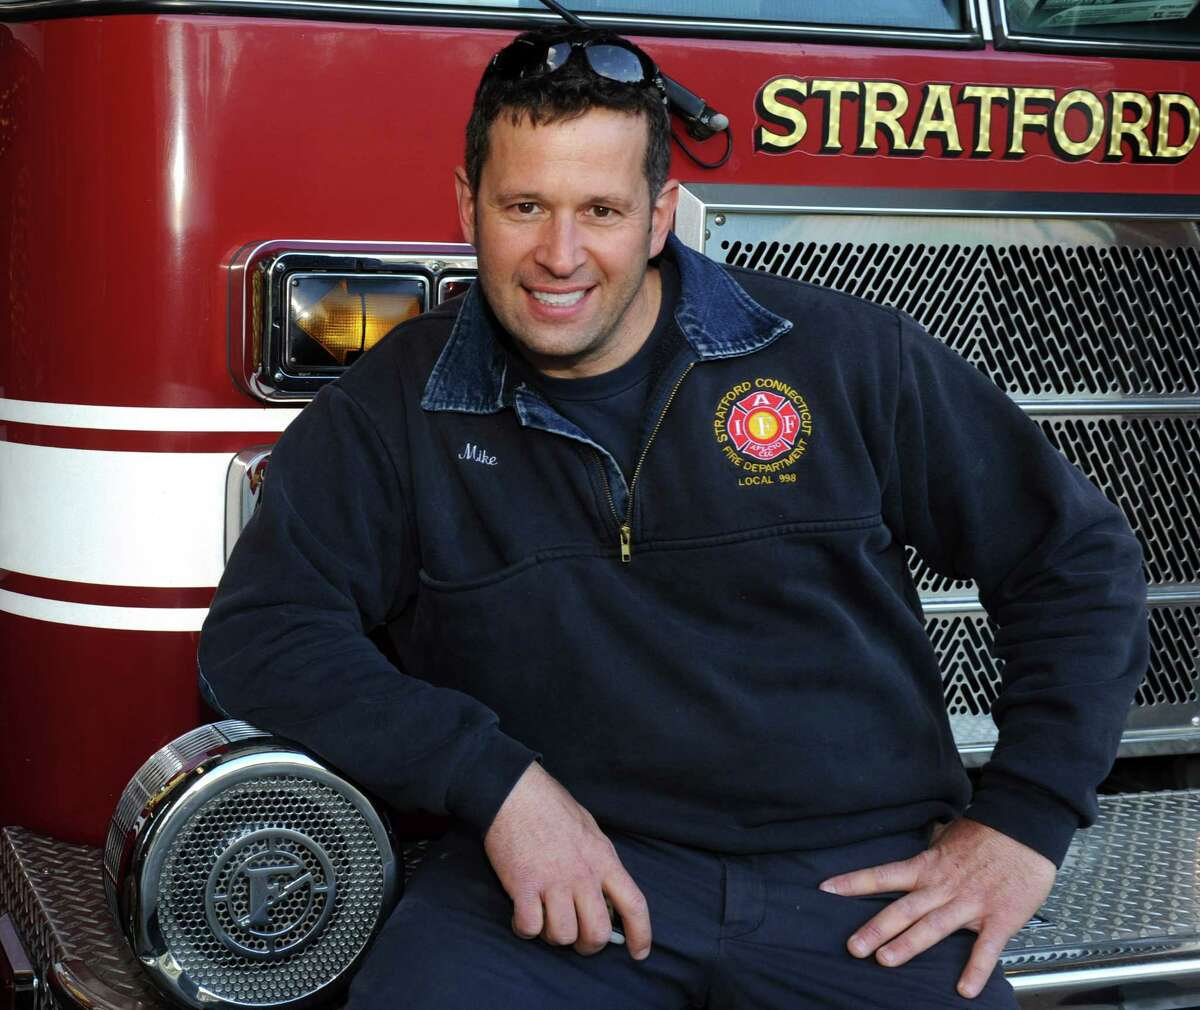 Mike Apatow, of Milford, poses at Stratford Fire Station, Company 2, in Stratford, Conn. May 10th, 2012, where he works as firefighter. Apatow, who had a radioactive stress test Wednesday, was pulled over later in the day, in Newtown, by a state police trooper after a radioactivity detector in the trooper's car was set off when Apatow passed. The detectors are used to help identify potential terror threats. Apatow was not on duty at the time.